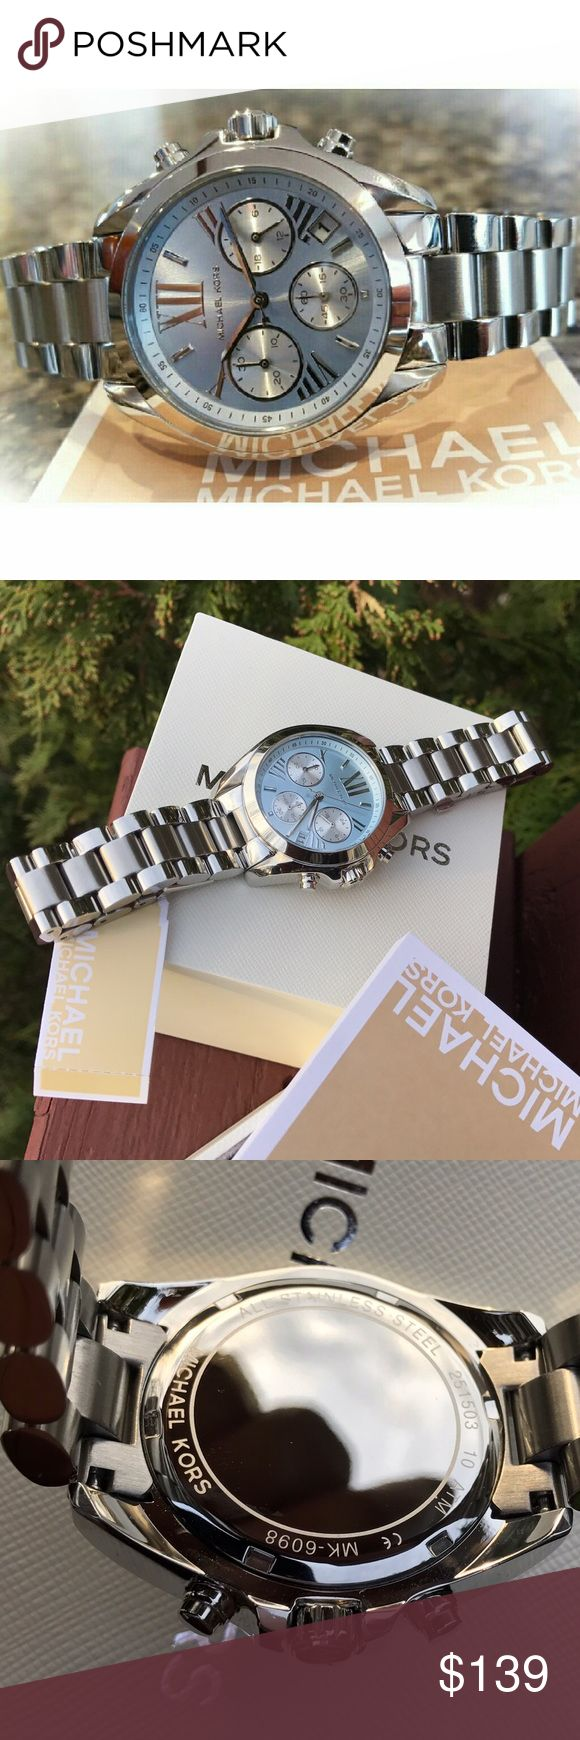 Michael Kors Bradshaw MK bracelet watch MK6098 Last 1! / Authentic MK6098 / Model: Bradshaw / Retail: $250 / Silver stainless steel band / New with Michael Kors watch box and owners booklet included / Blue chronograph dial / 36mm / 5 ATM / UPC: 796483140455 / No trades. Buy now or offer only / Shipped same business day. Michael Kors Accessories Watches